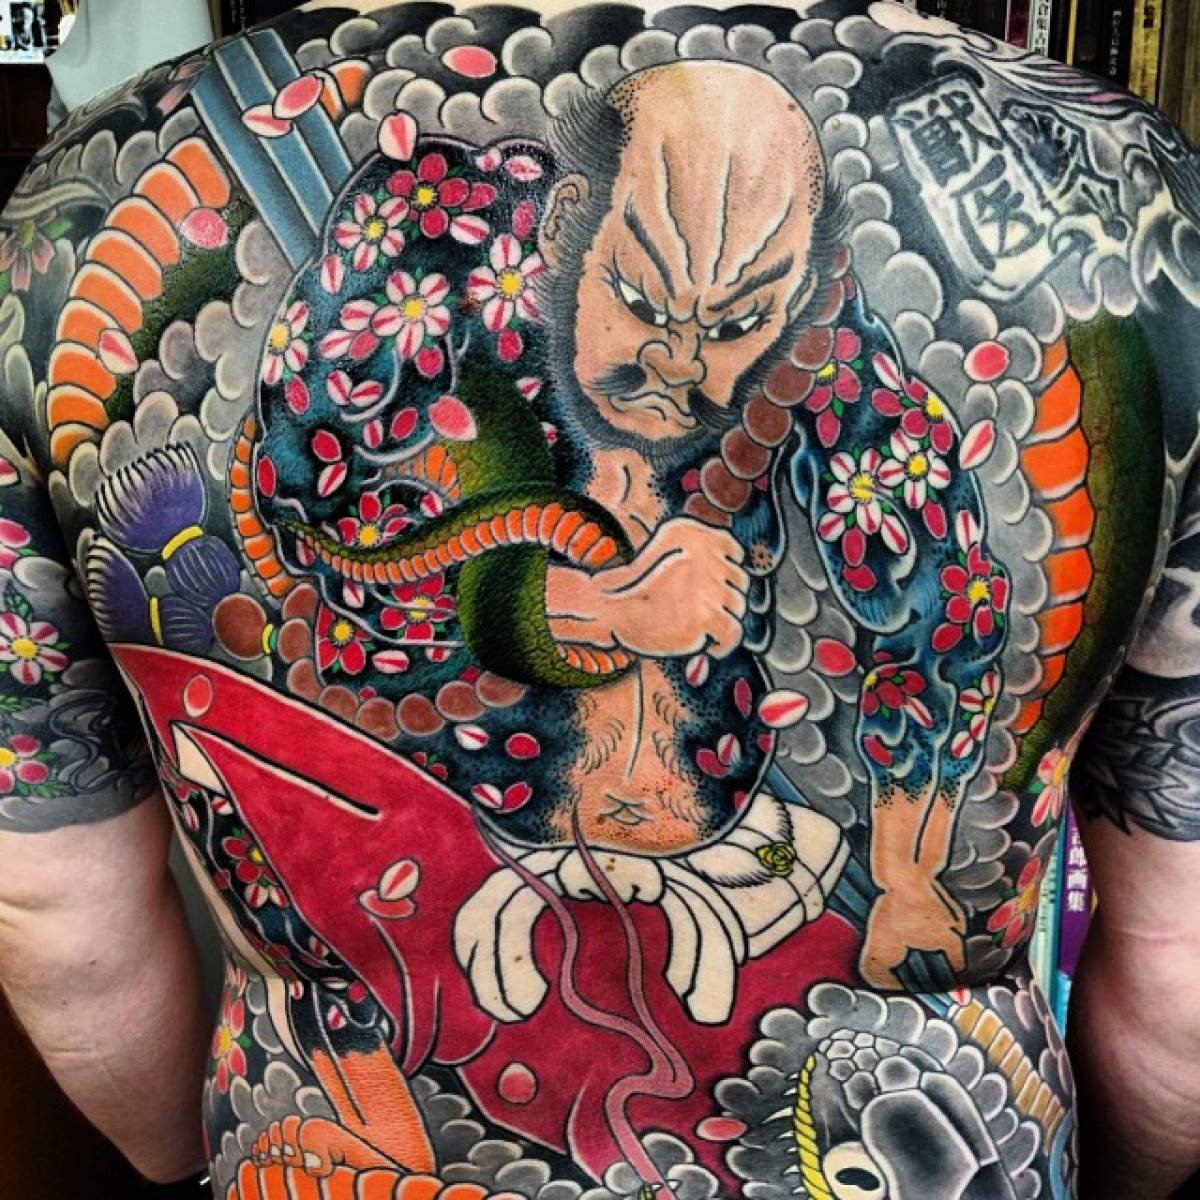 japanese tattoos irezumi meaning and history with pictures - HD1200×1200